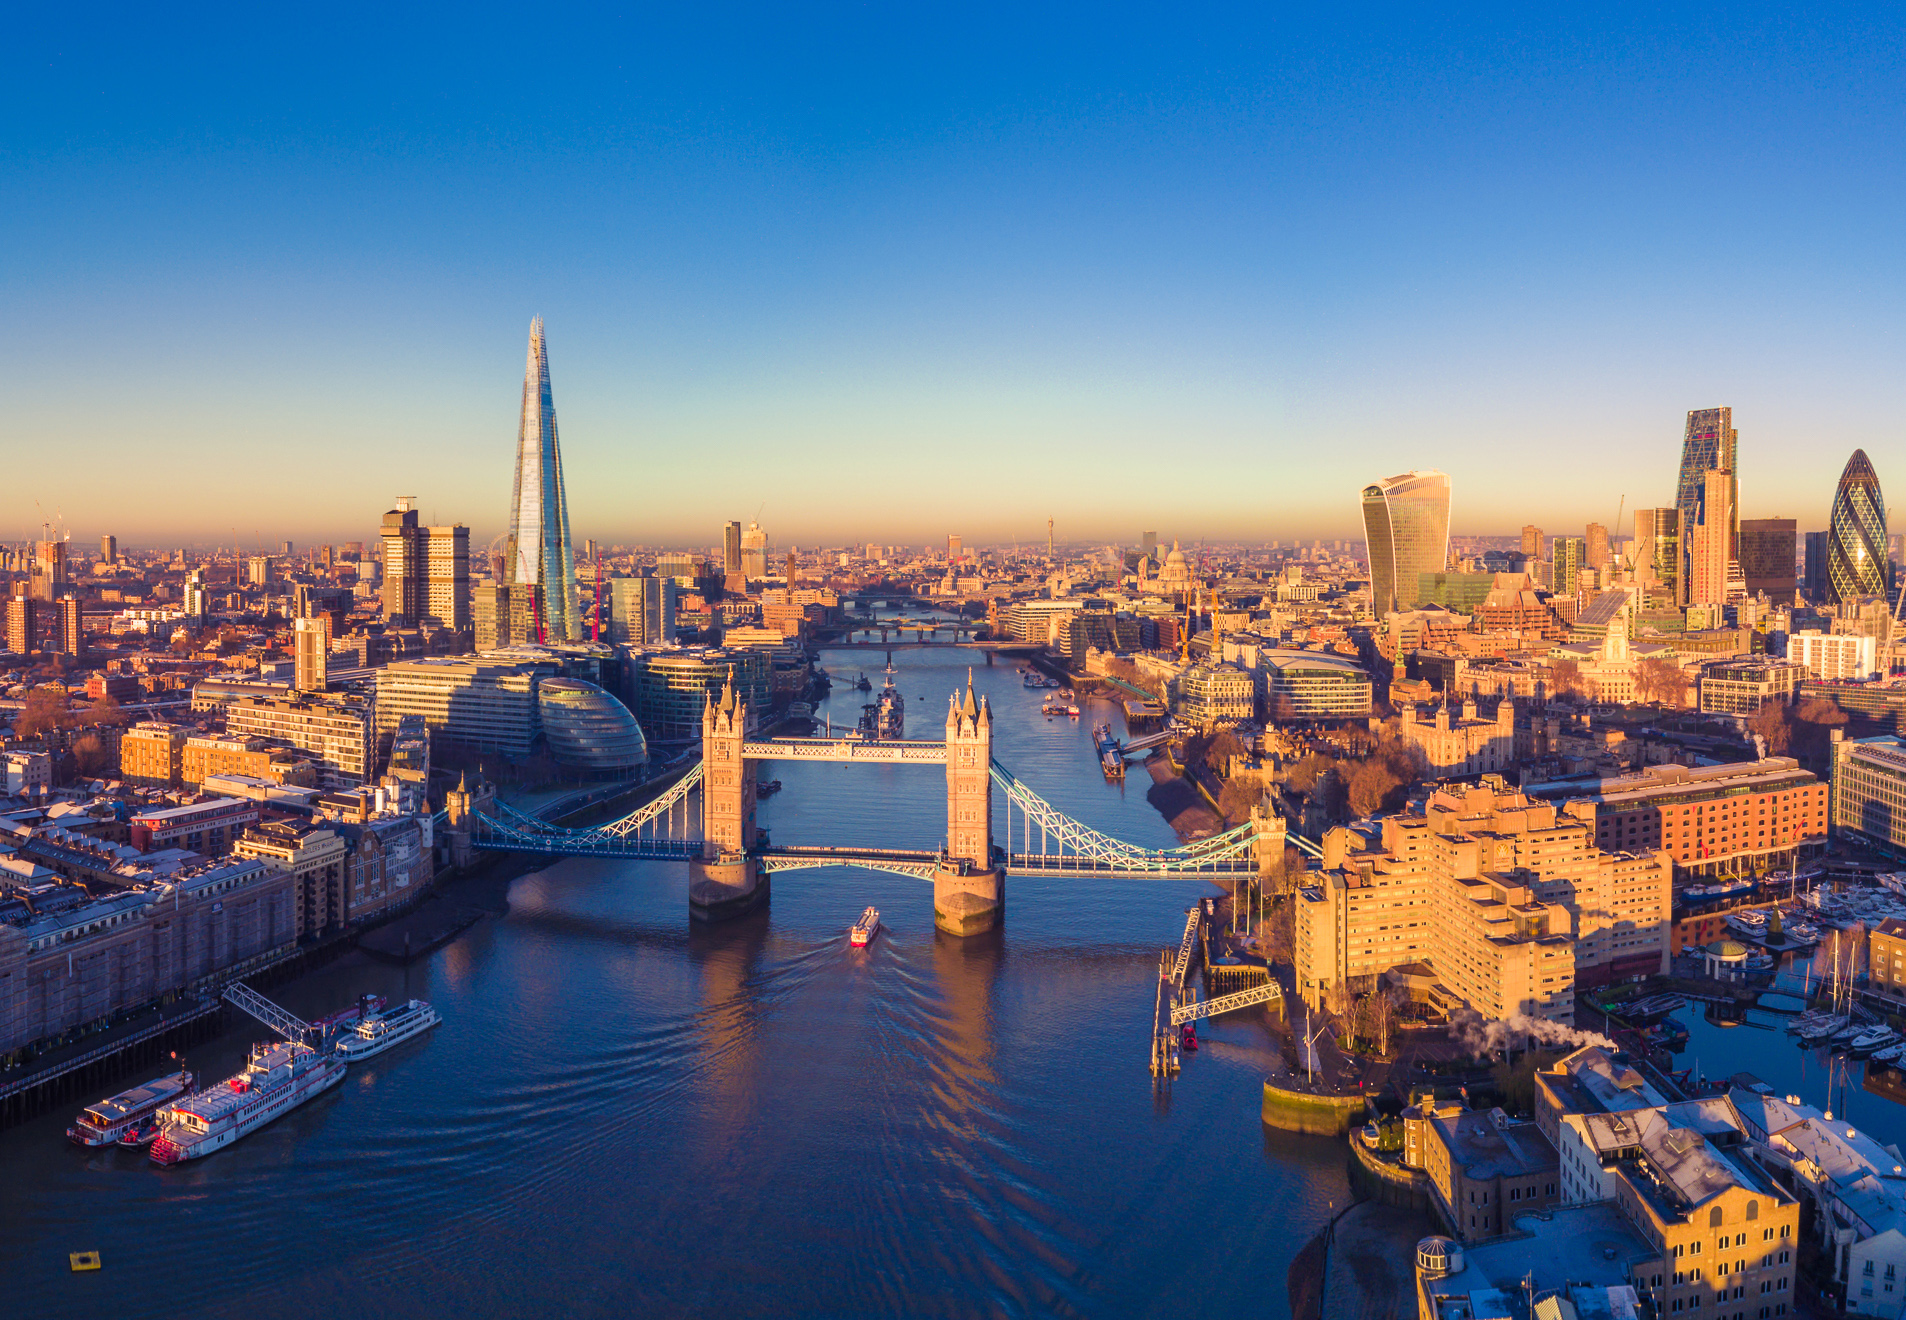 London came fifth in the ranking, scoring points for it's bar and food scene and wealth of things to do.